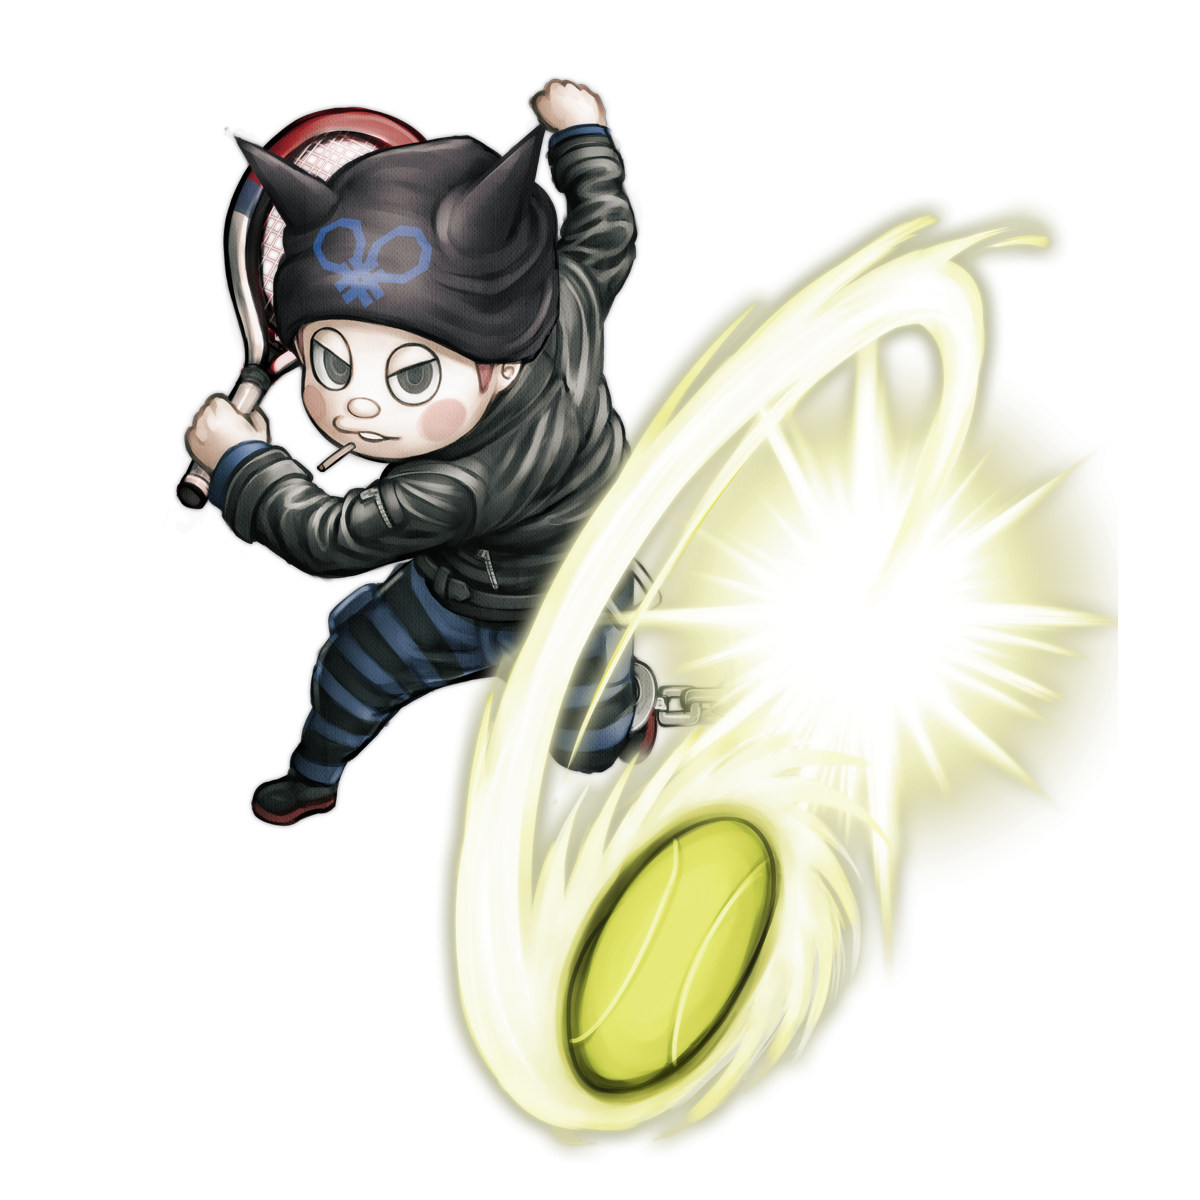 Pin On Danganronpa Characters Ryoma hoshi is tied with himiko yumeno for being my absolute drv3 favorite character. pin on danganronpa characters